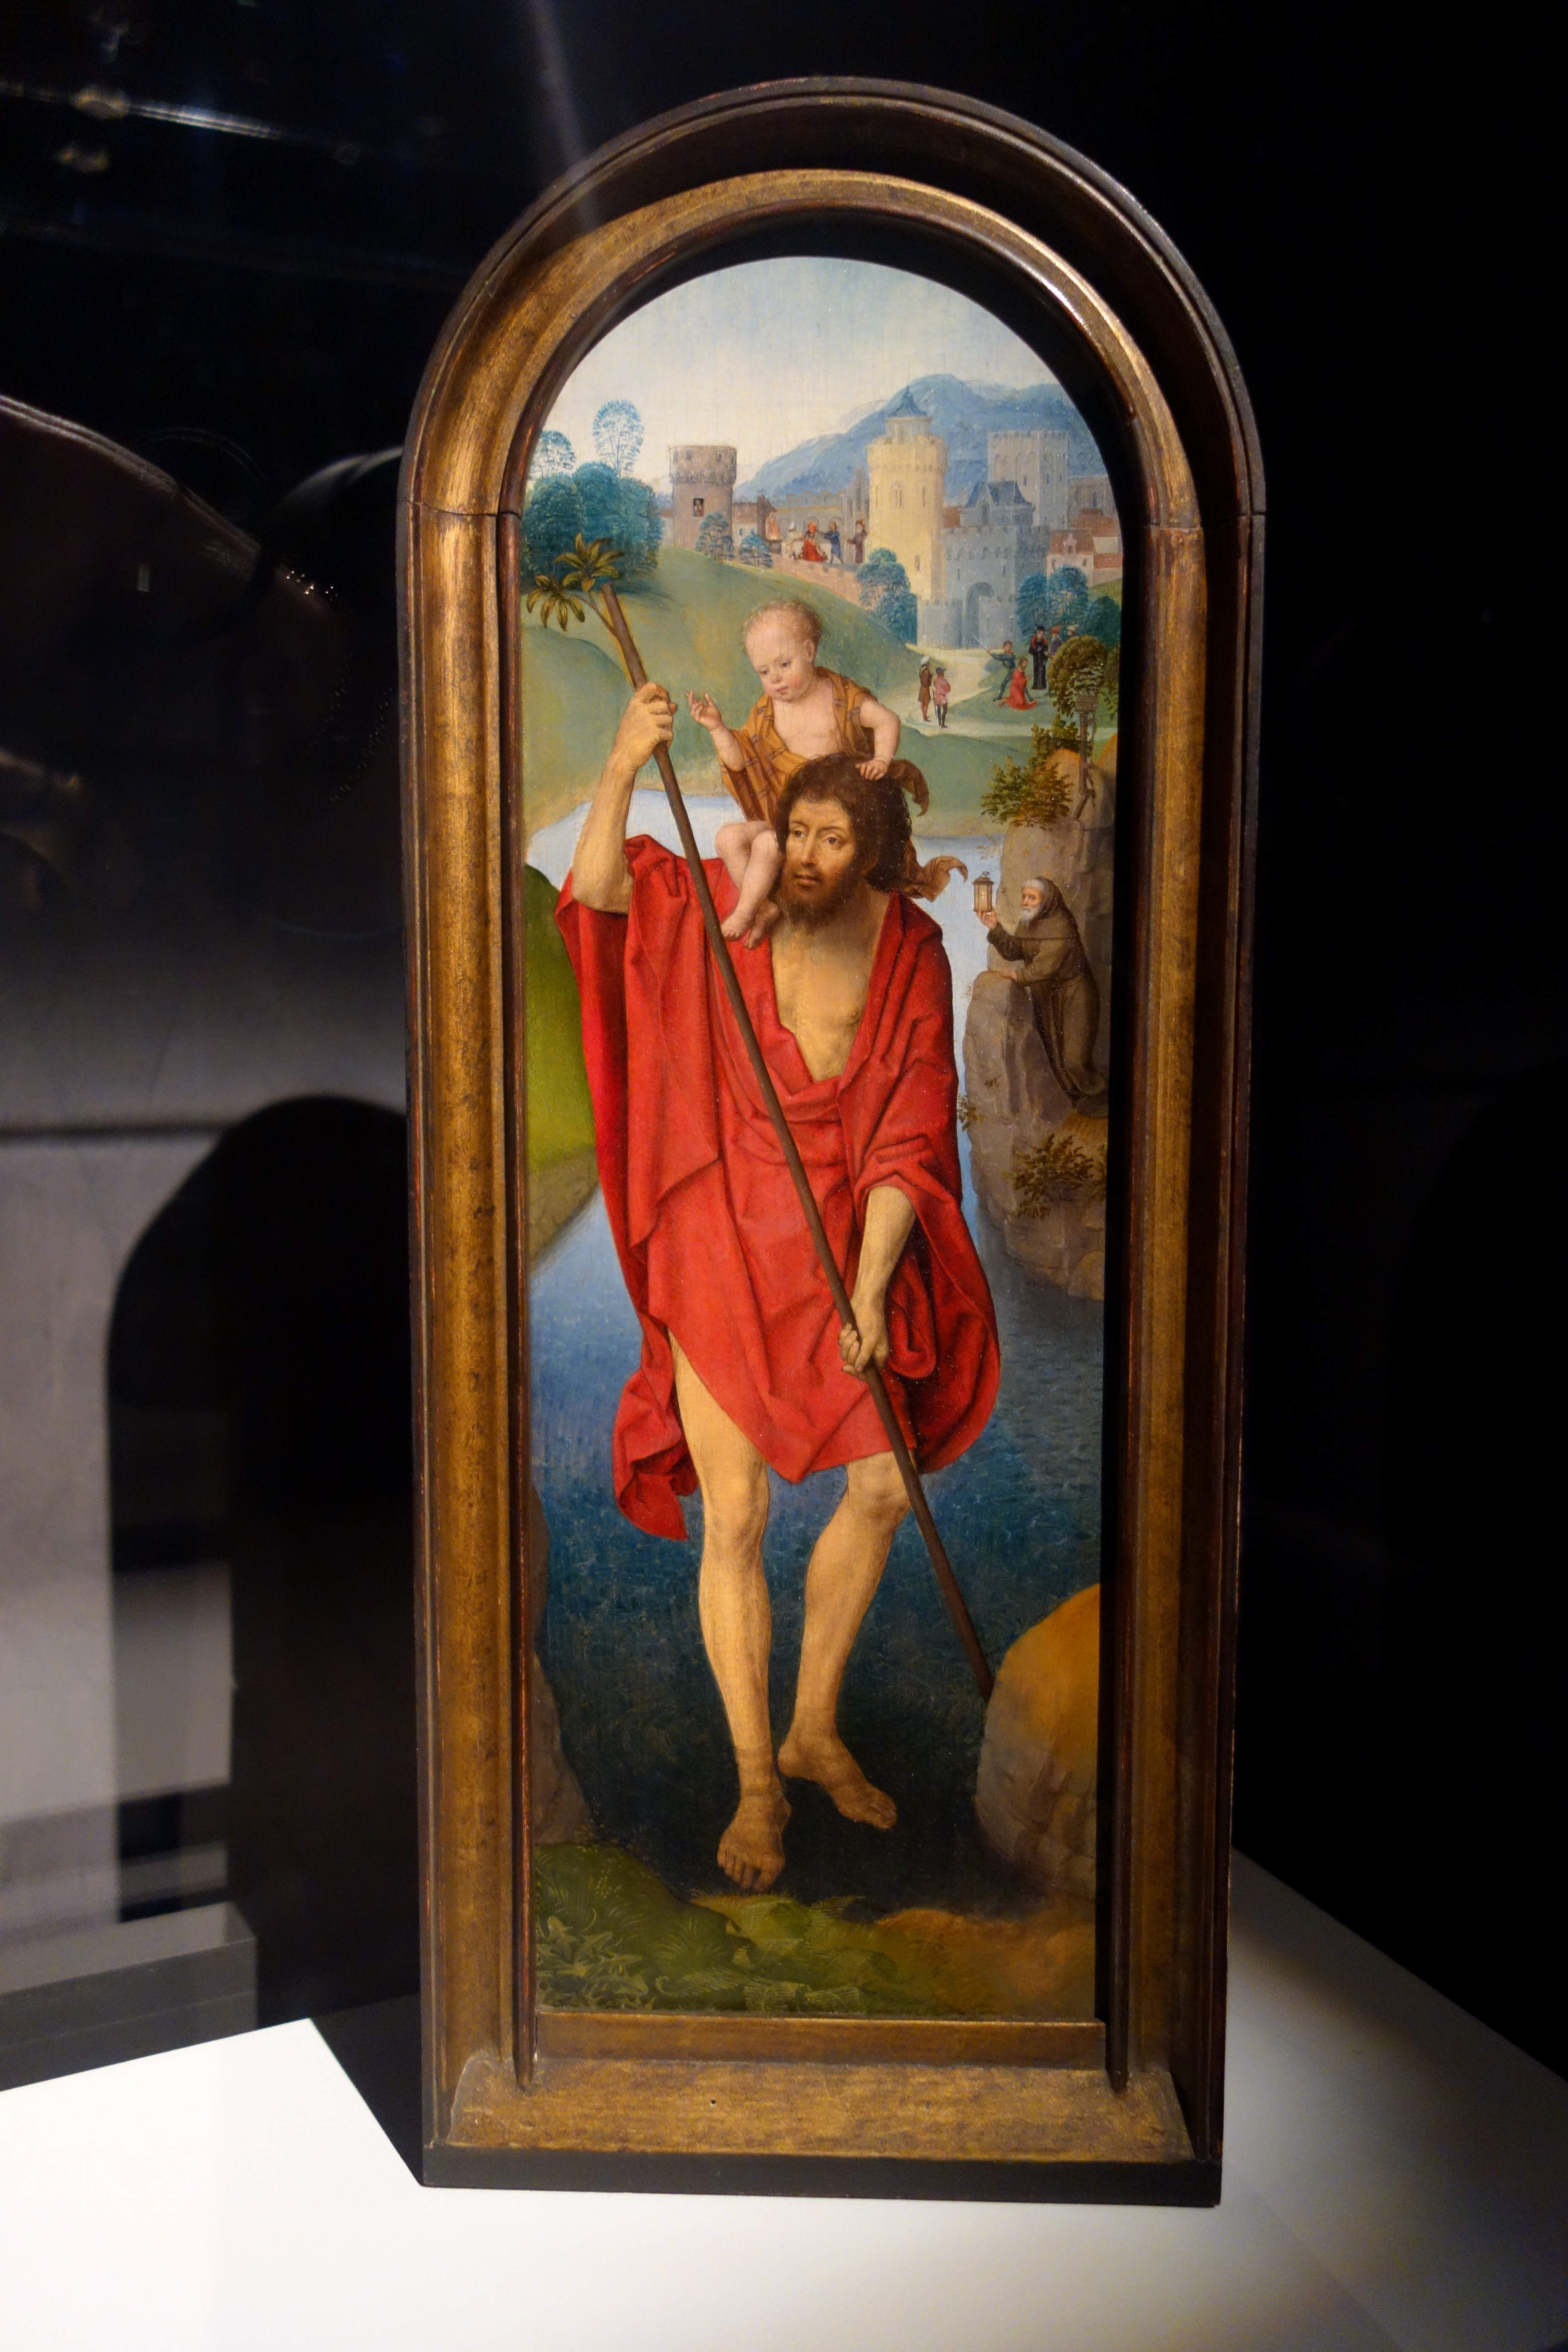 File:St. Christopher by Hans Memling, c. 1479-1480, oil